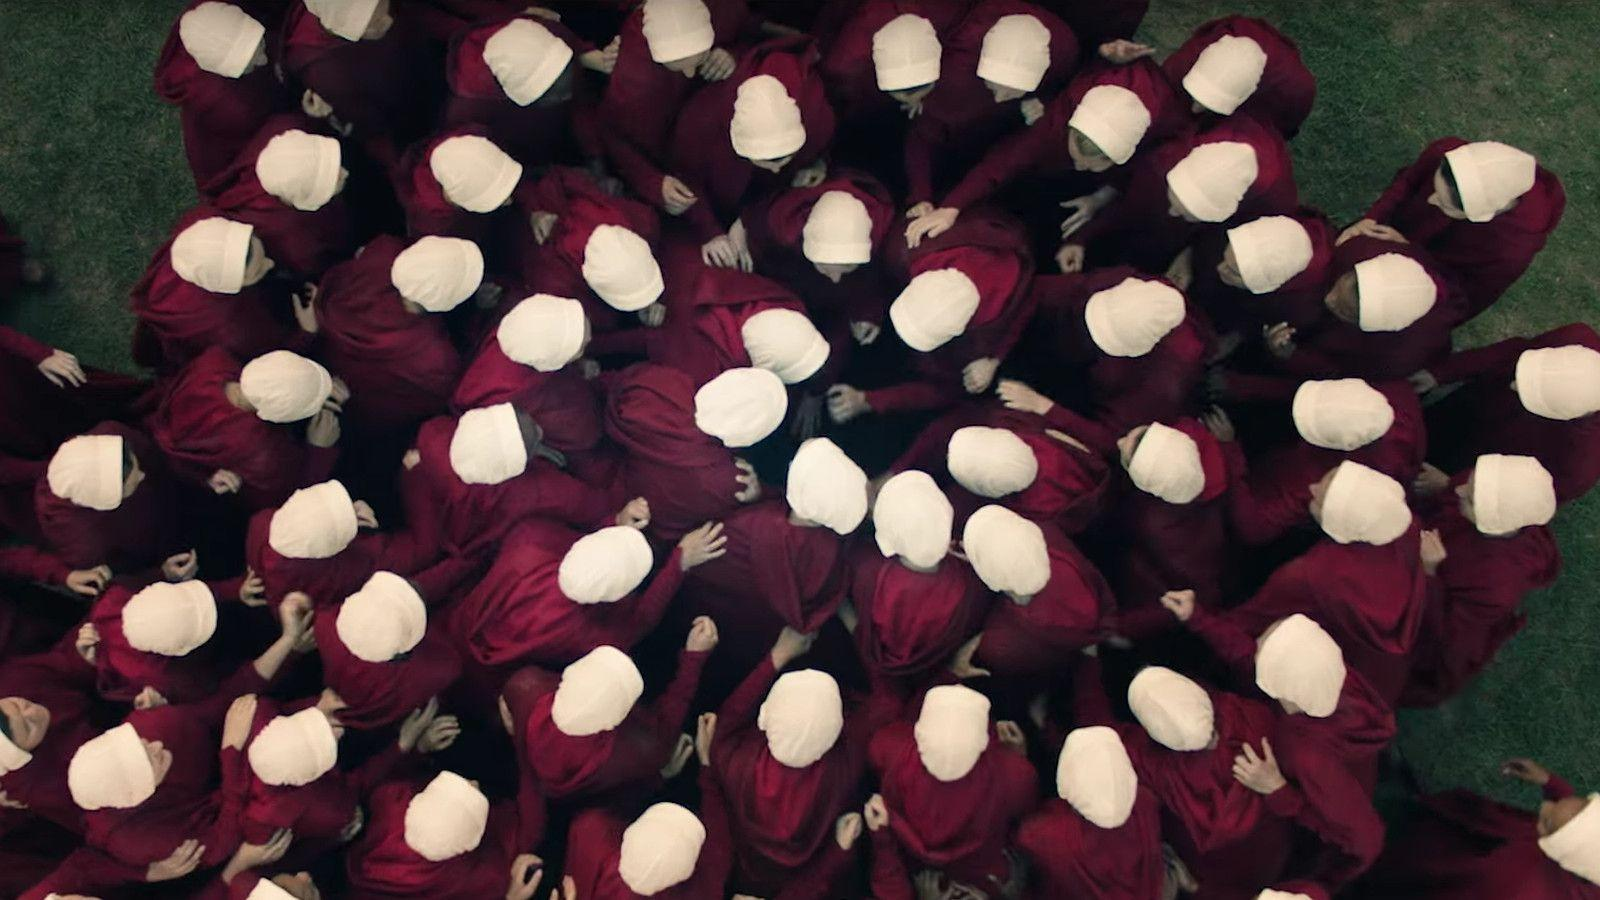 The full trailer for Hulu's Handmaid's Tale shows the rise of